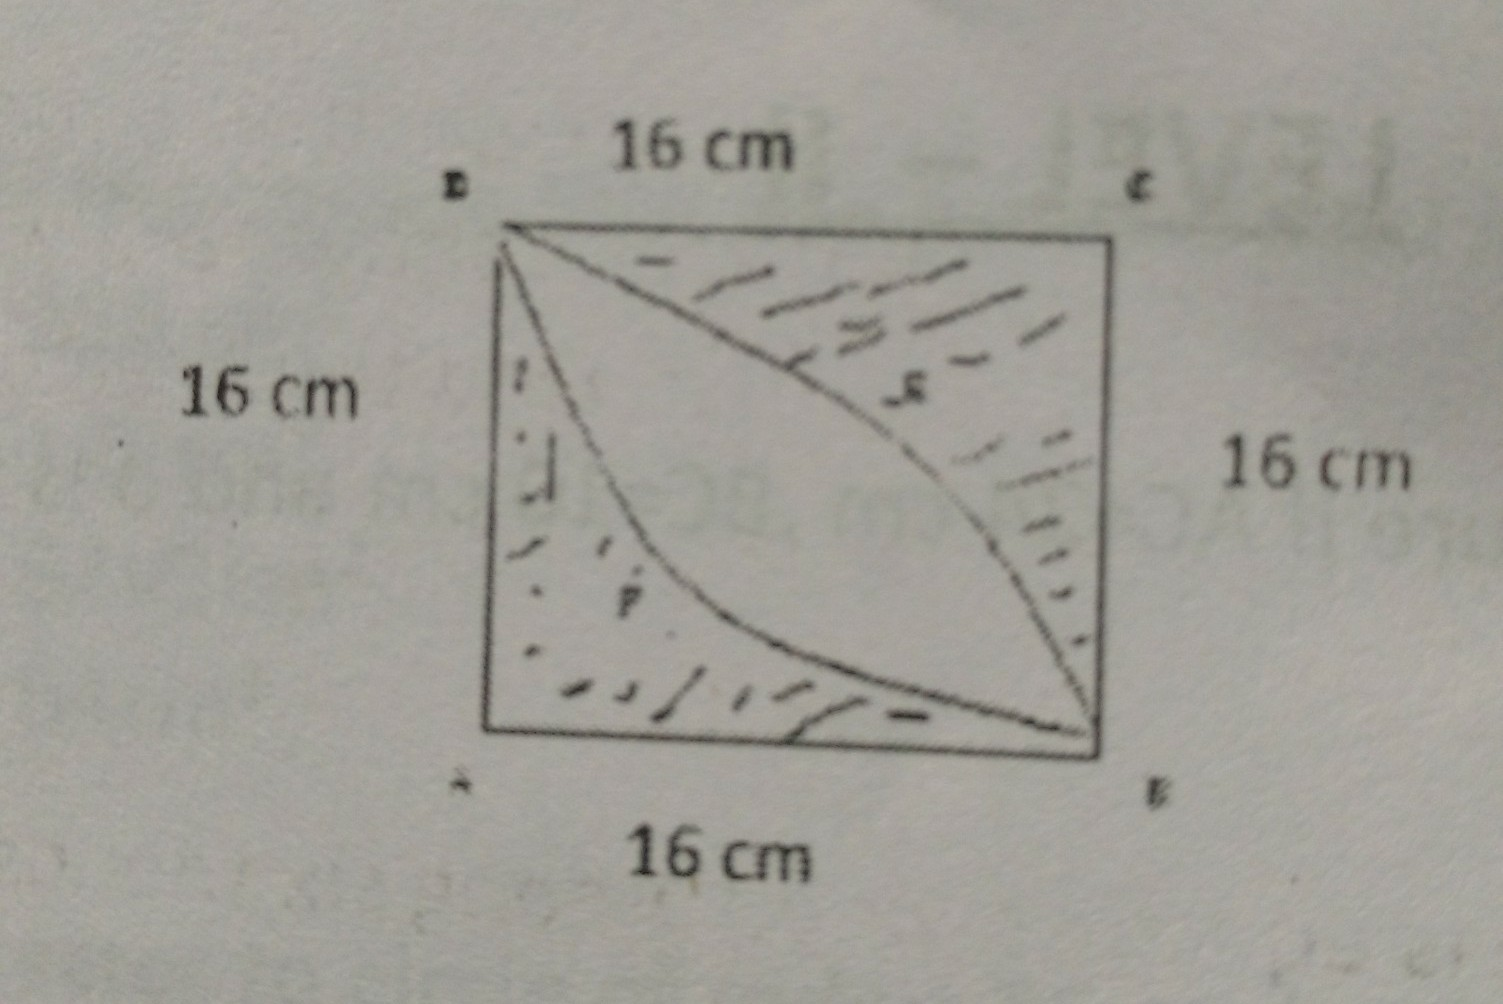 calculate the area of shaded region in given figure where